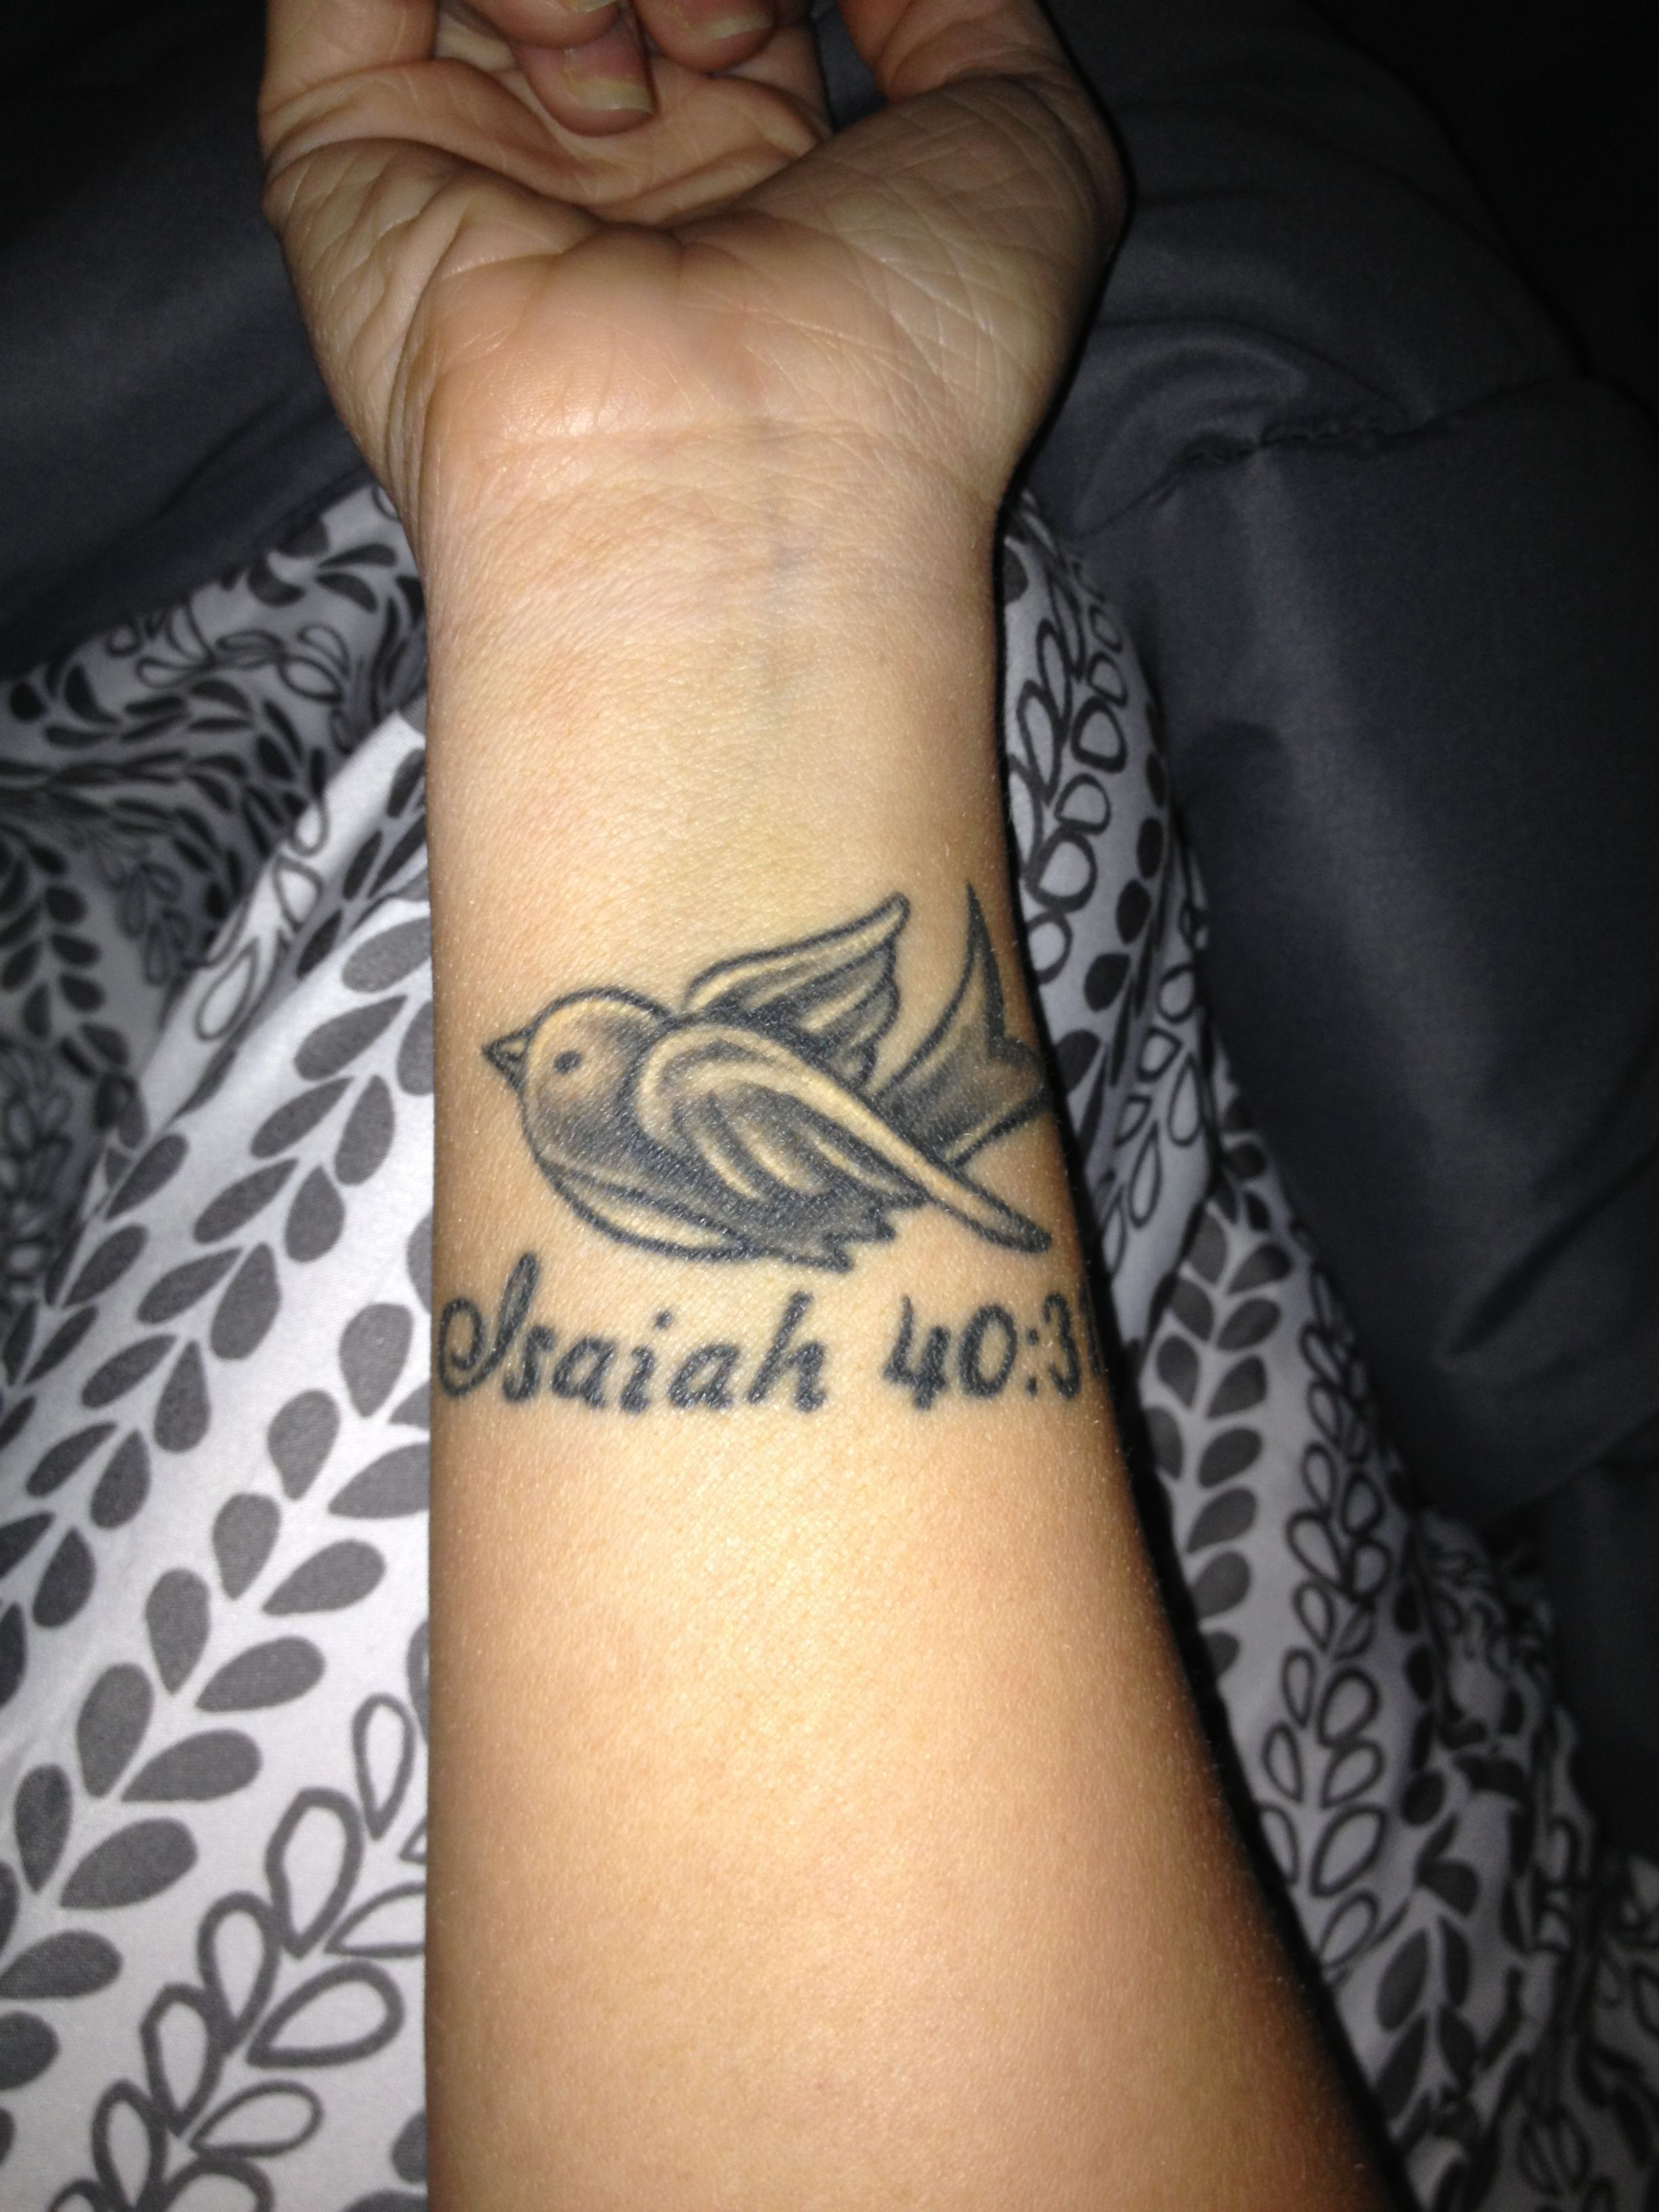 My wrist tattoo in memory of my dad isaiah 40 31 ink for In memory of my dad tattoo designs